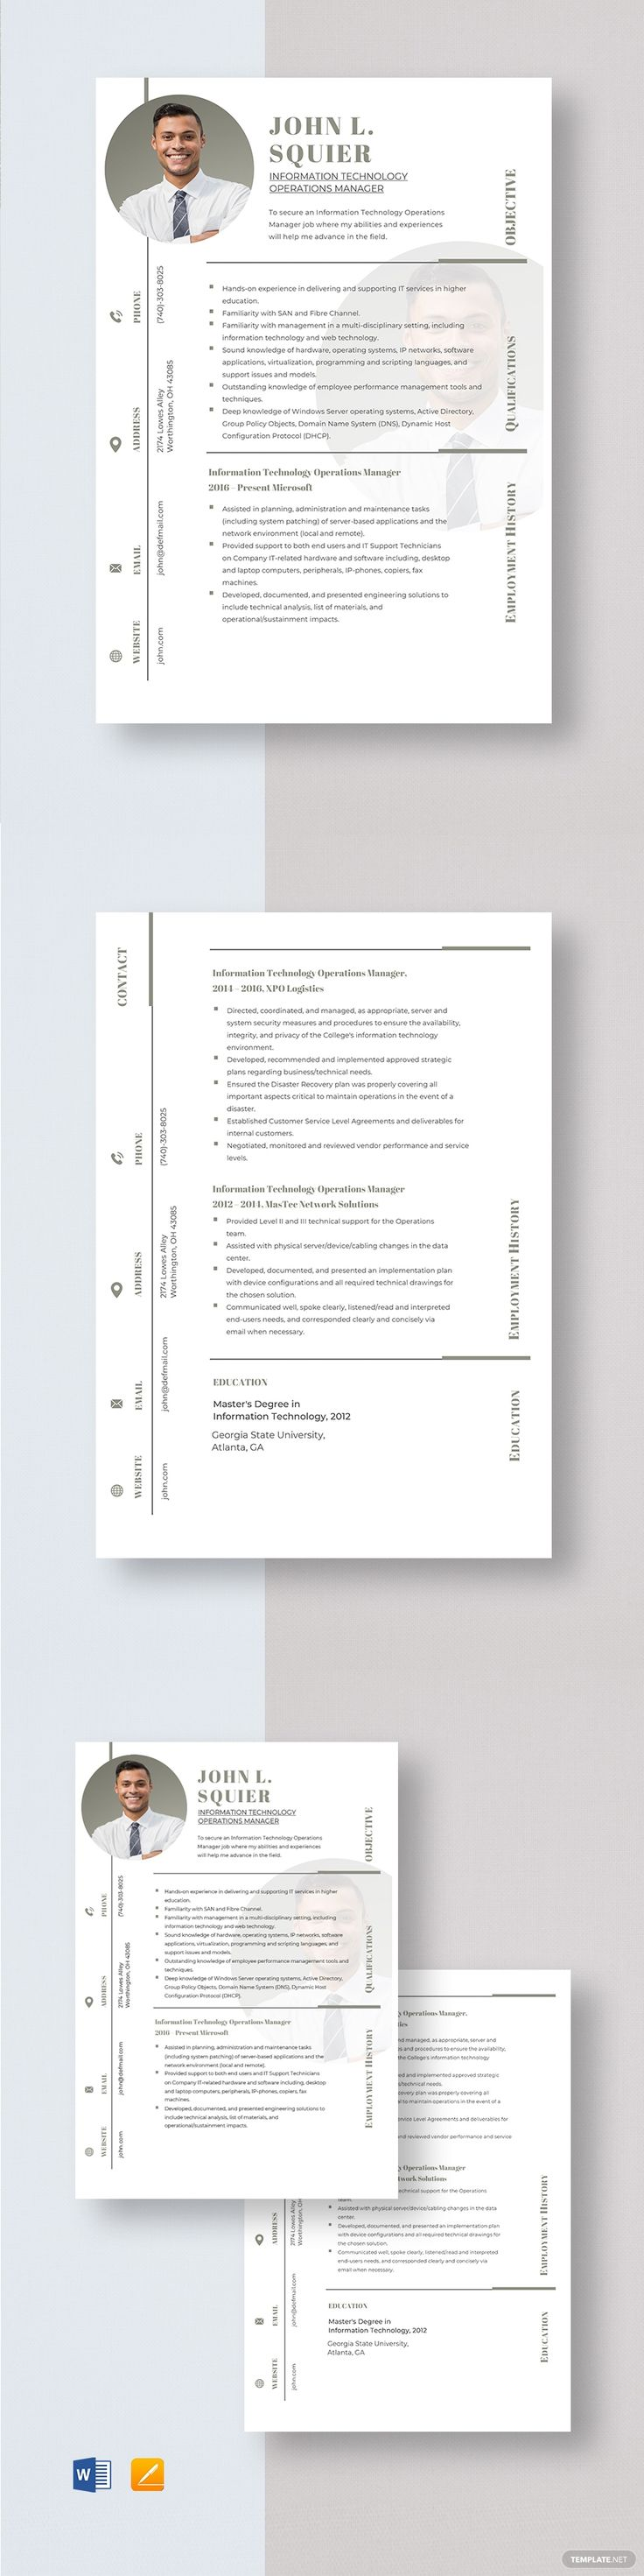 Information Technology Operations Manager Resume Template